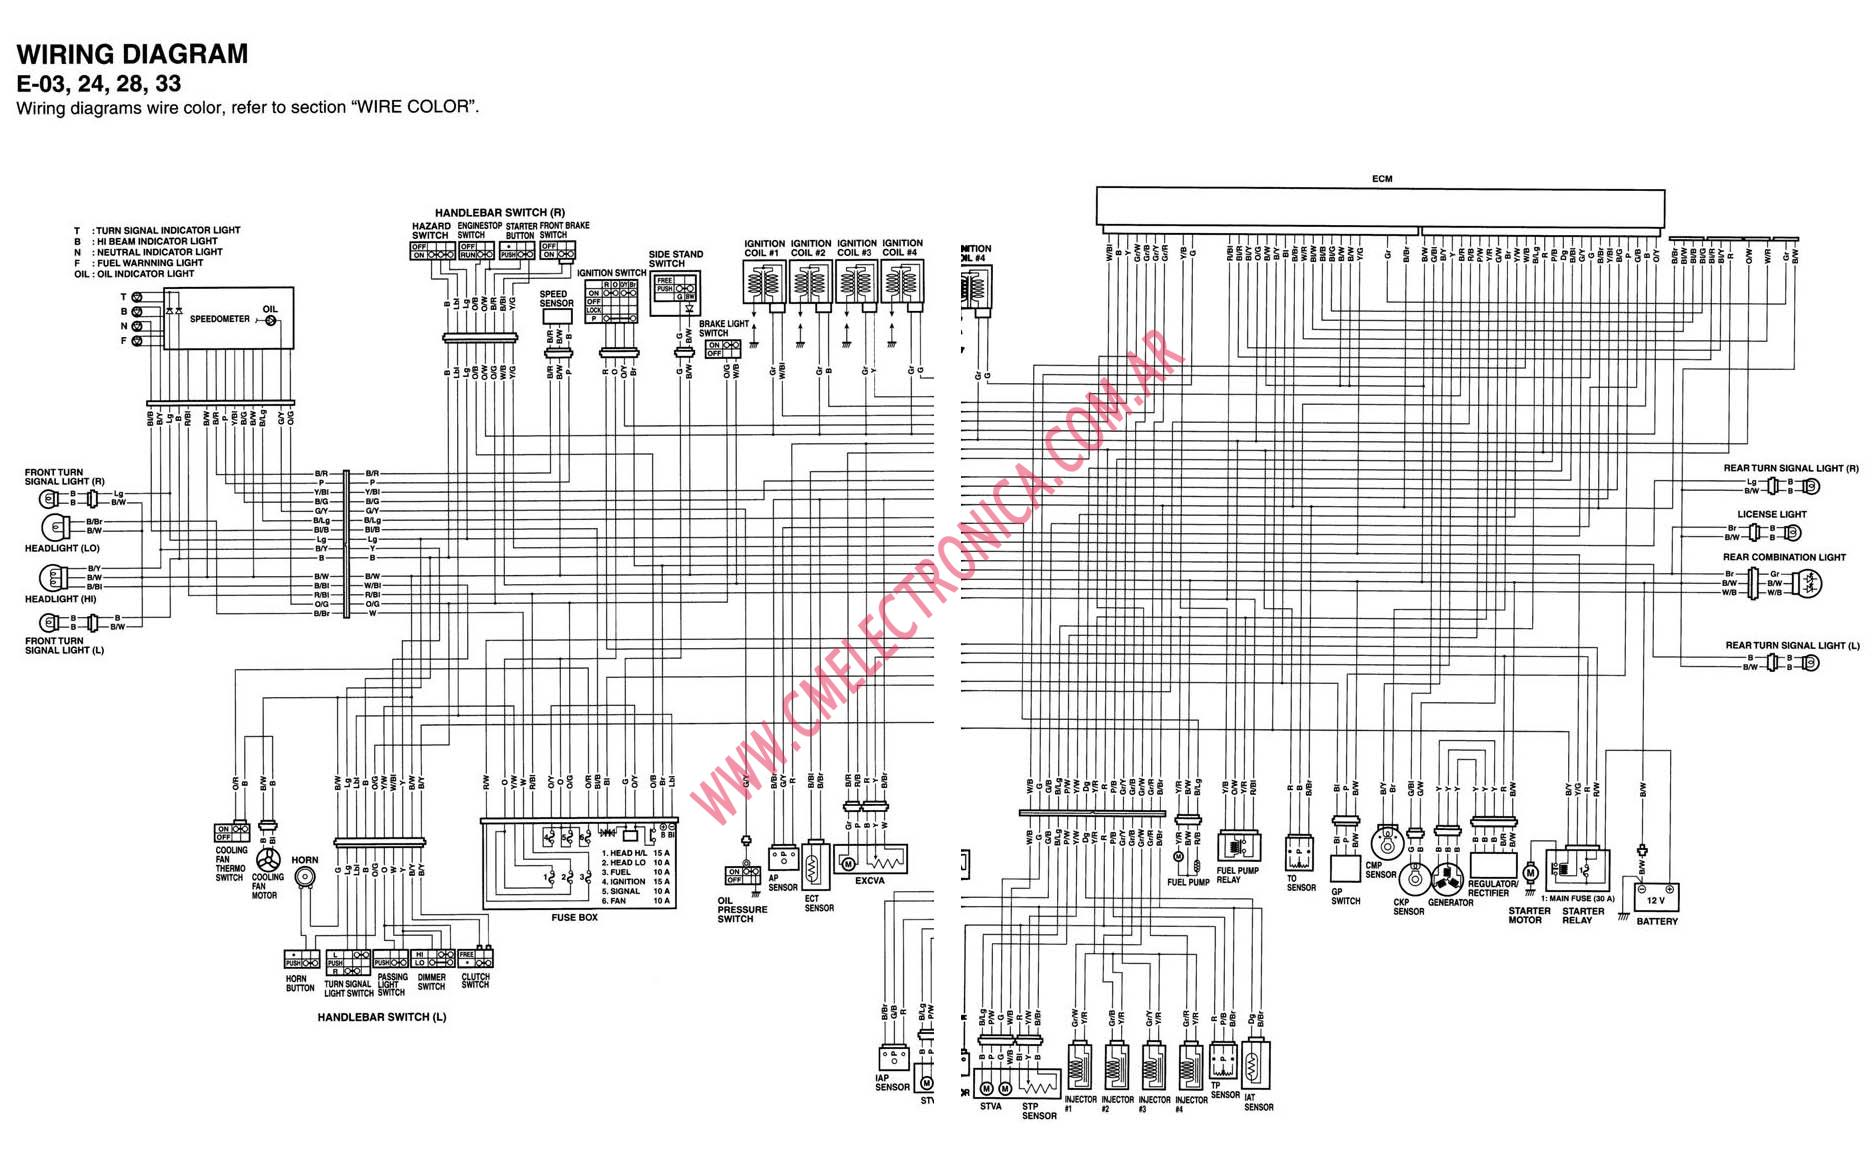 medium resolution of 2006 gsxr wiring diagram wiring schematic 2007 gsxr 600 wiring diagram 2006 gsxr 750 wiring diagram